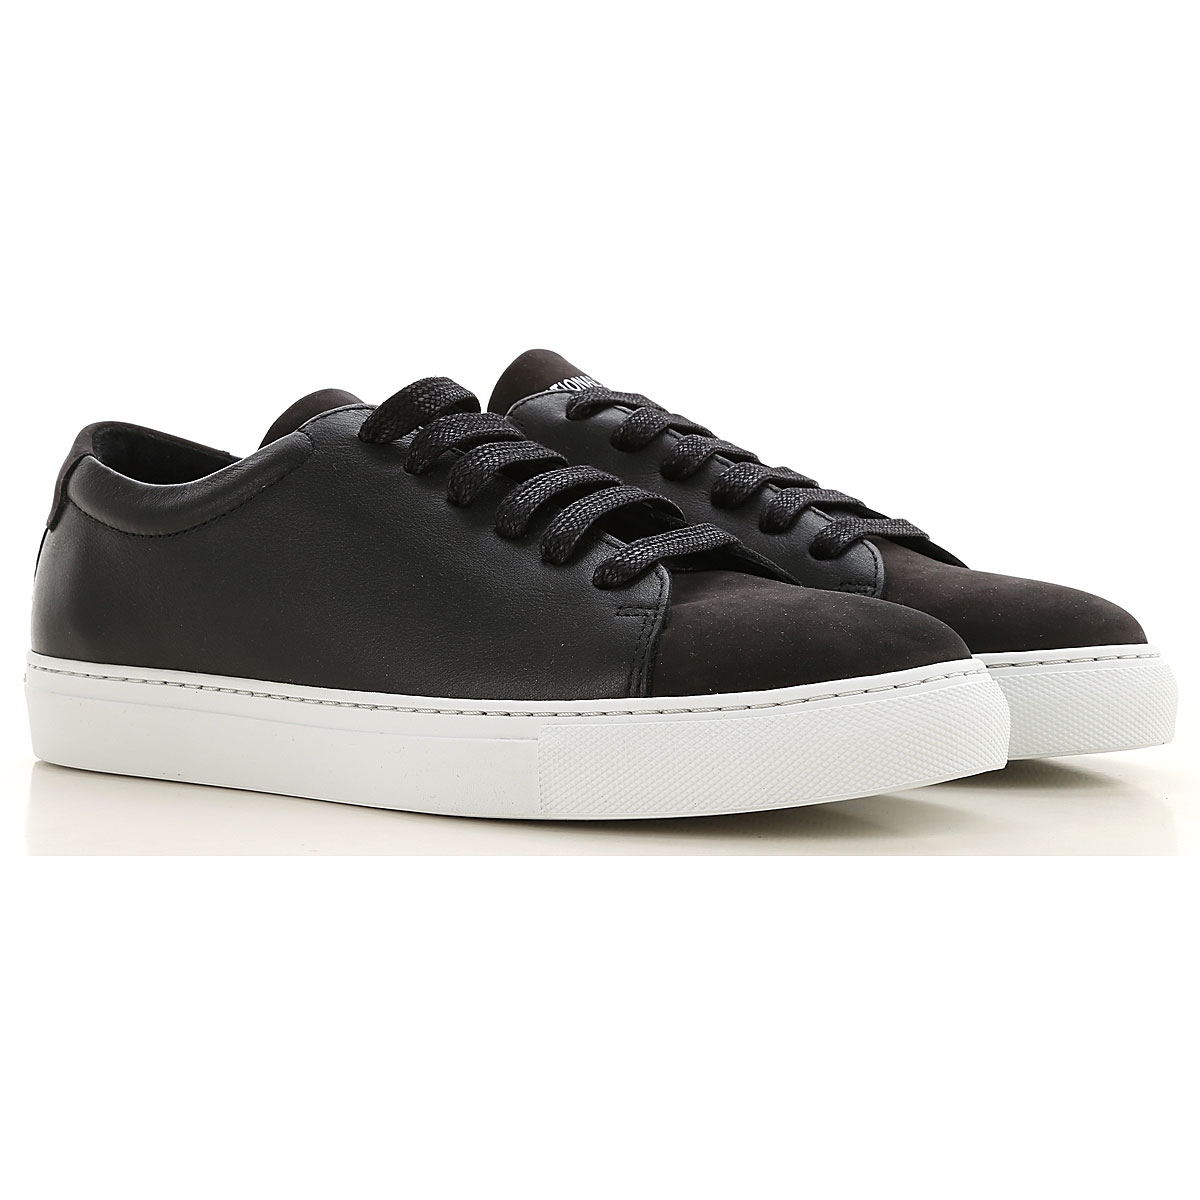 National Standard Sneakers for Men On Sale, Black, Leather, 2019, 8